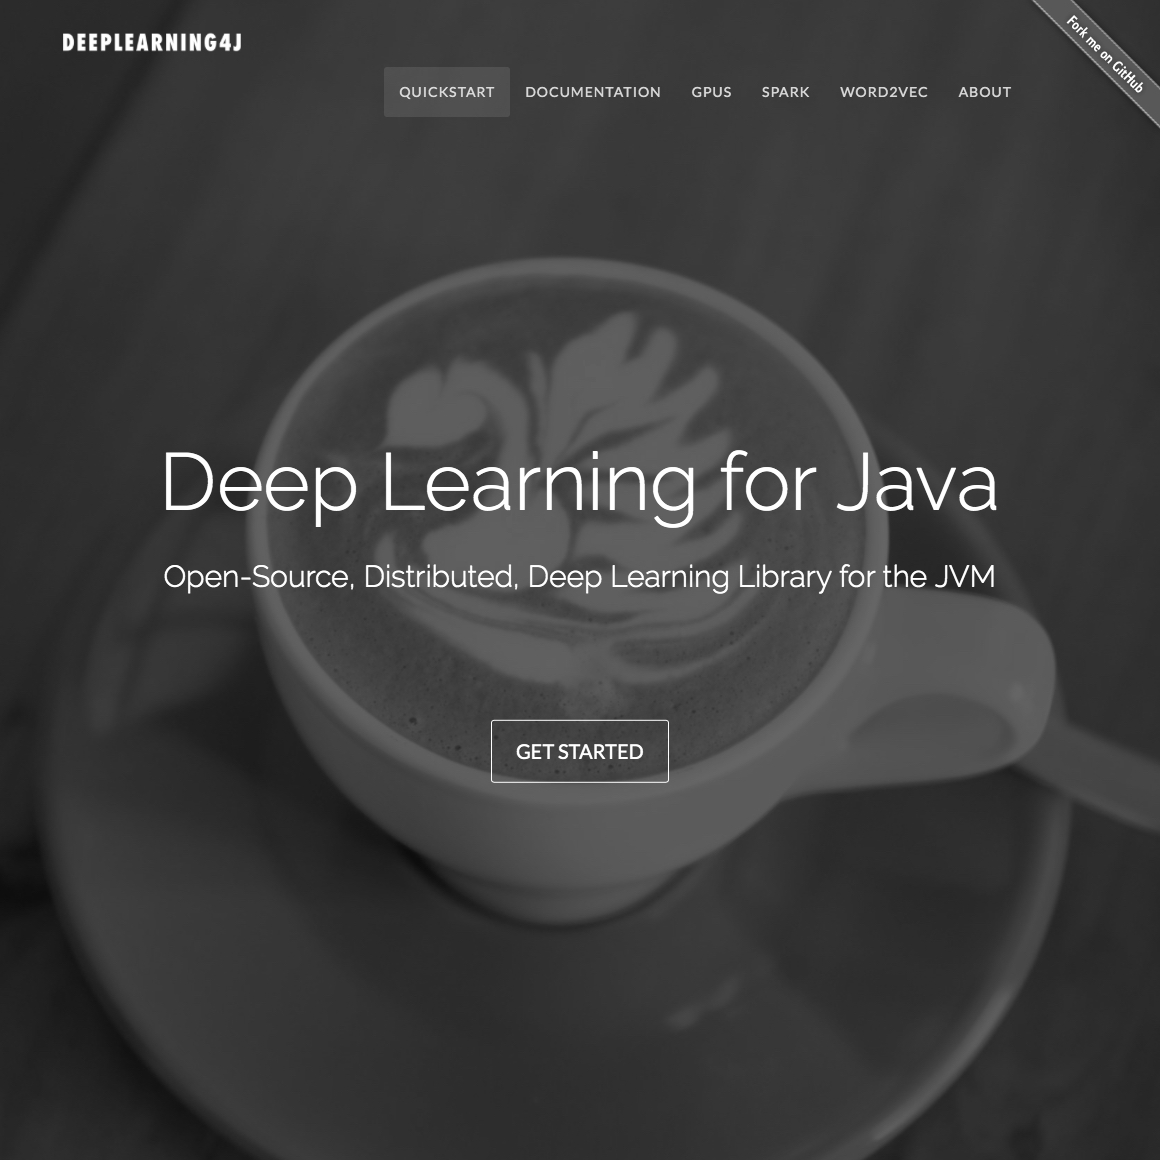 macOS Sierra: Installing DEEPLEARNING4J (Deep Learning for Java)